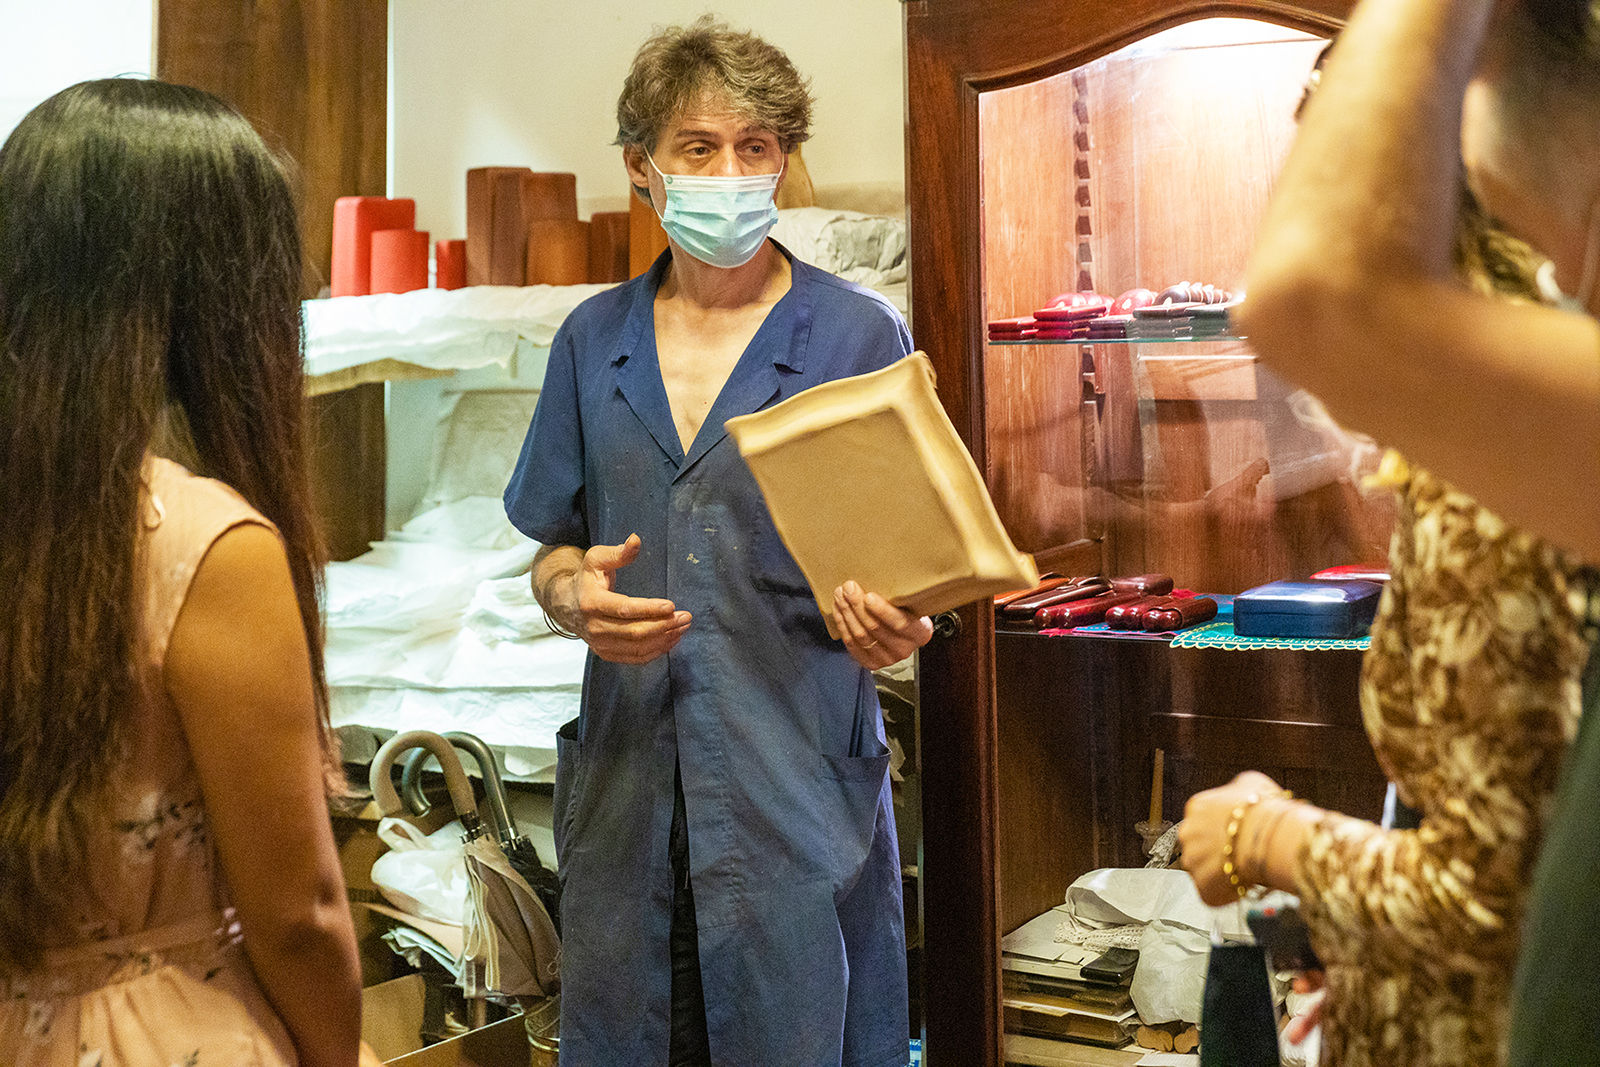 Leather craftsman Simone Taddei explains his work to a group in Florence